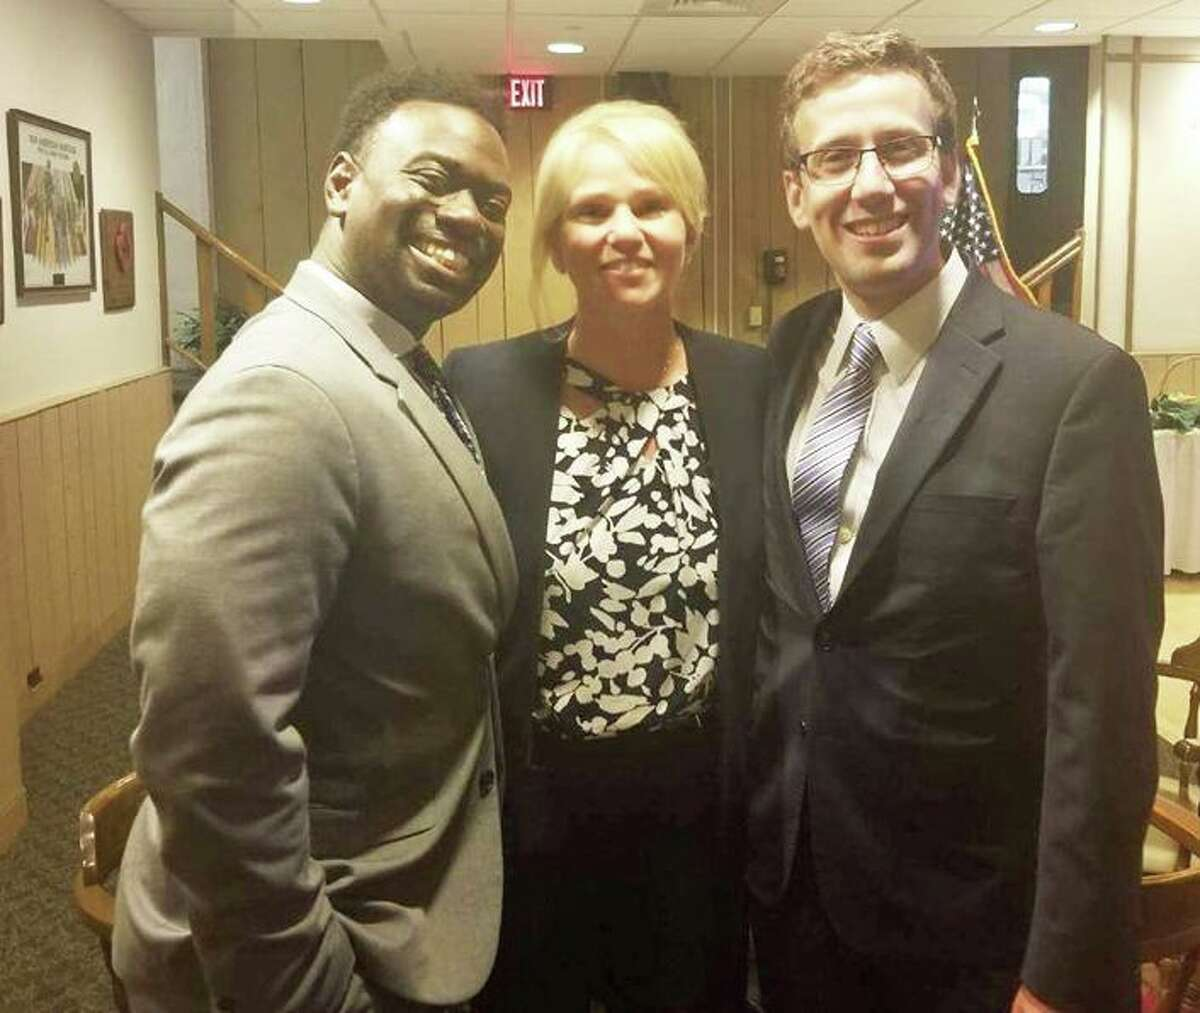 From left are state Rep. Quentin Phipps, D-Middletown, Middletown Common Council Deputy Majority Leader Mary Bartolotta and state Sen. Matt Lesser, D-Middletown.